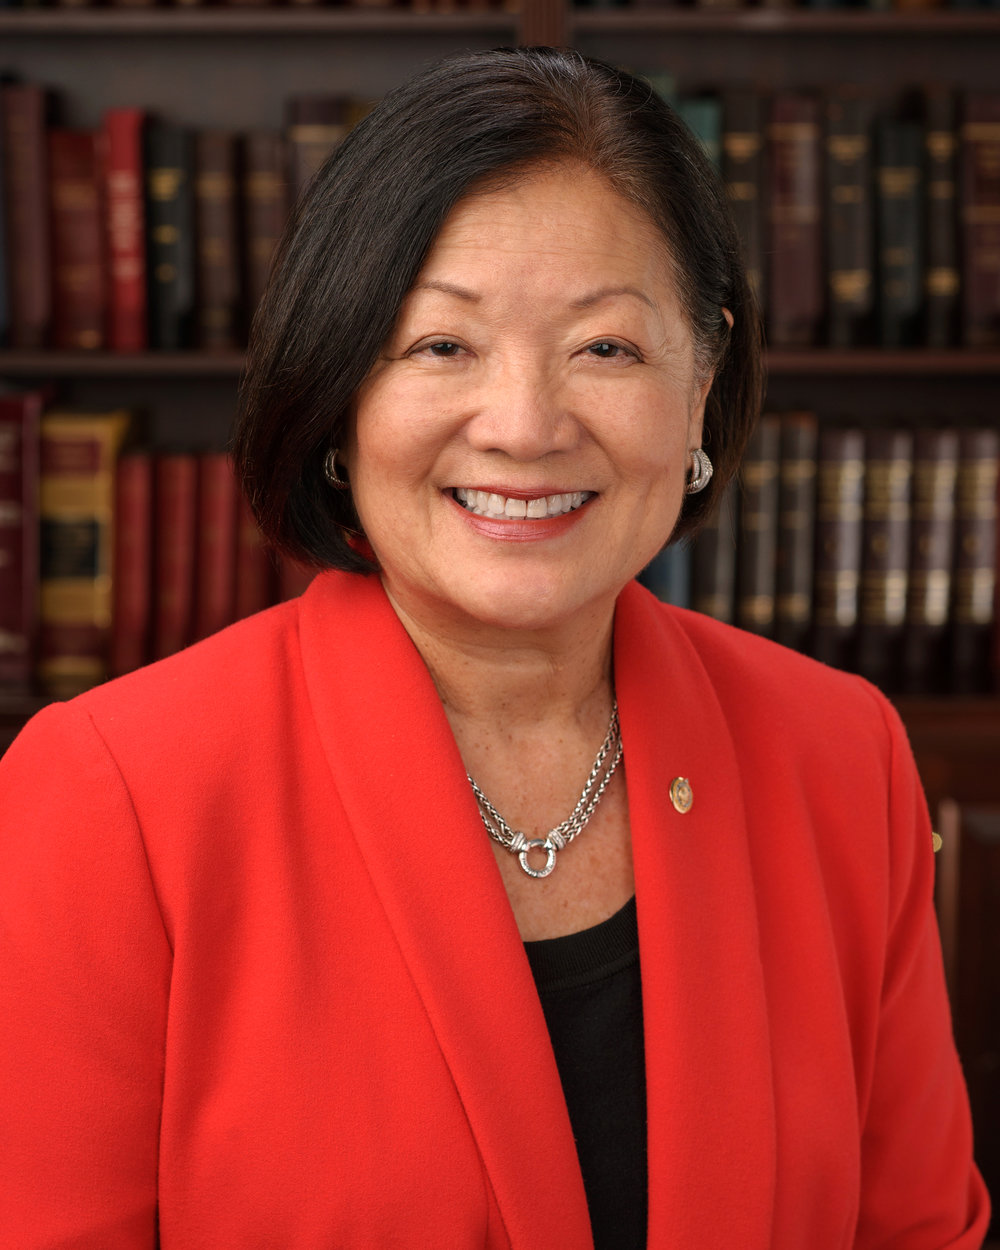 Mazie_Hirono,_official_portrait,_113th_Congress.jpg